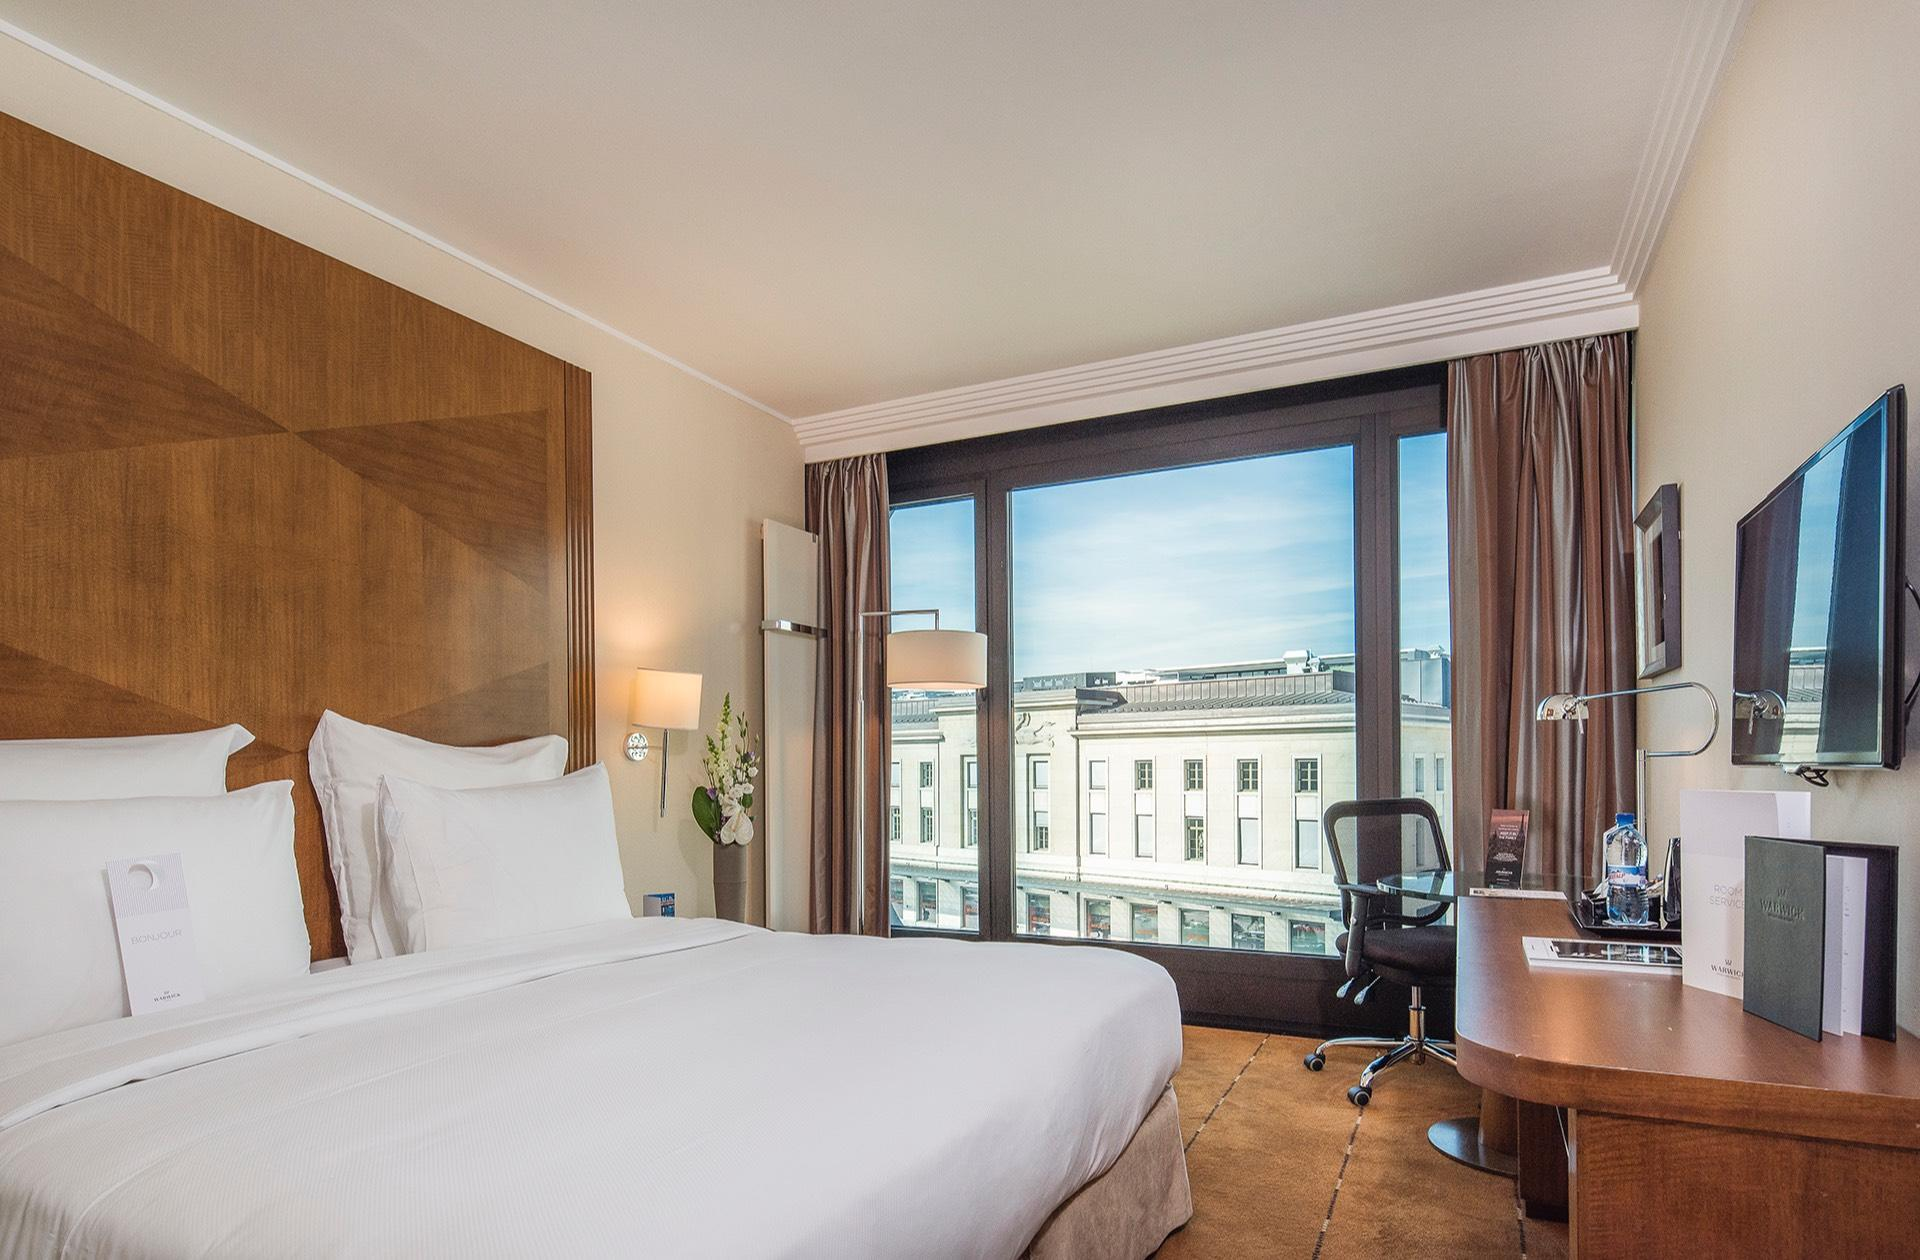 Superior Room at Warwick Geneva